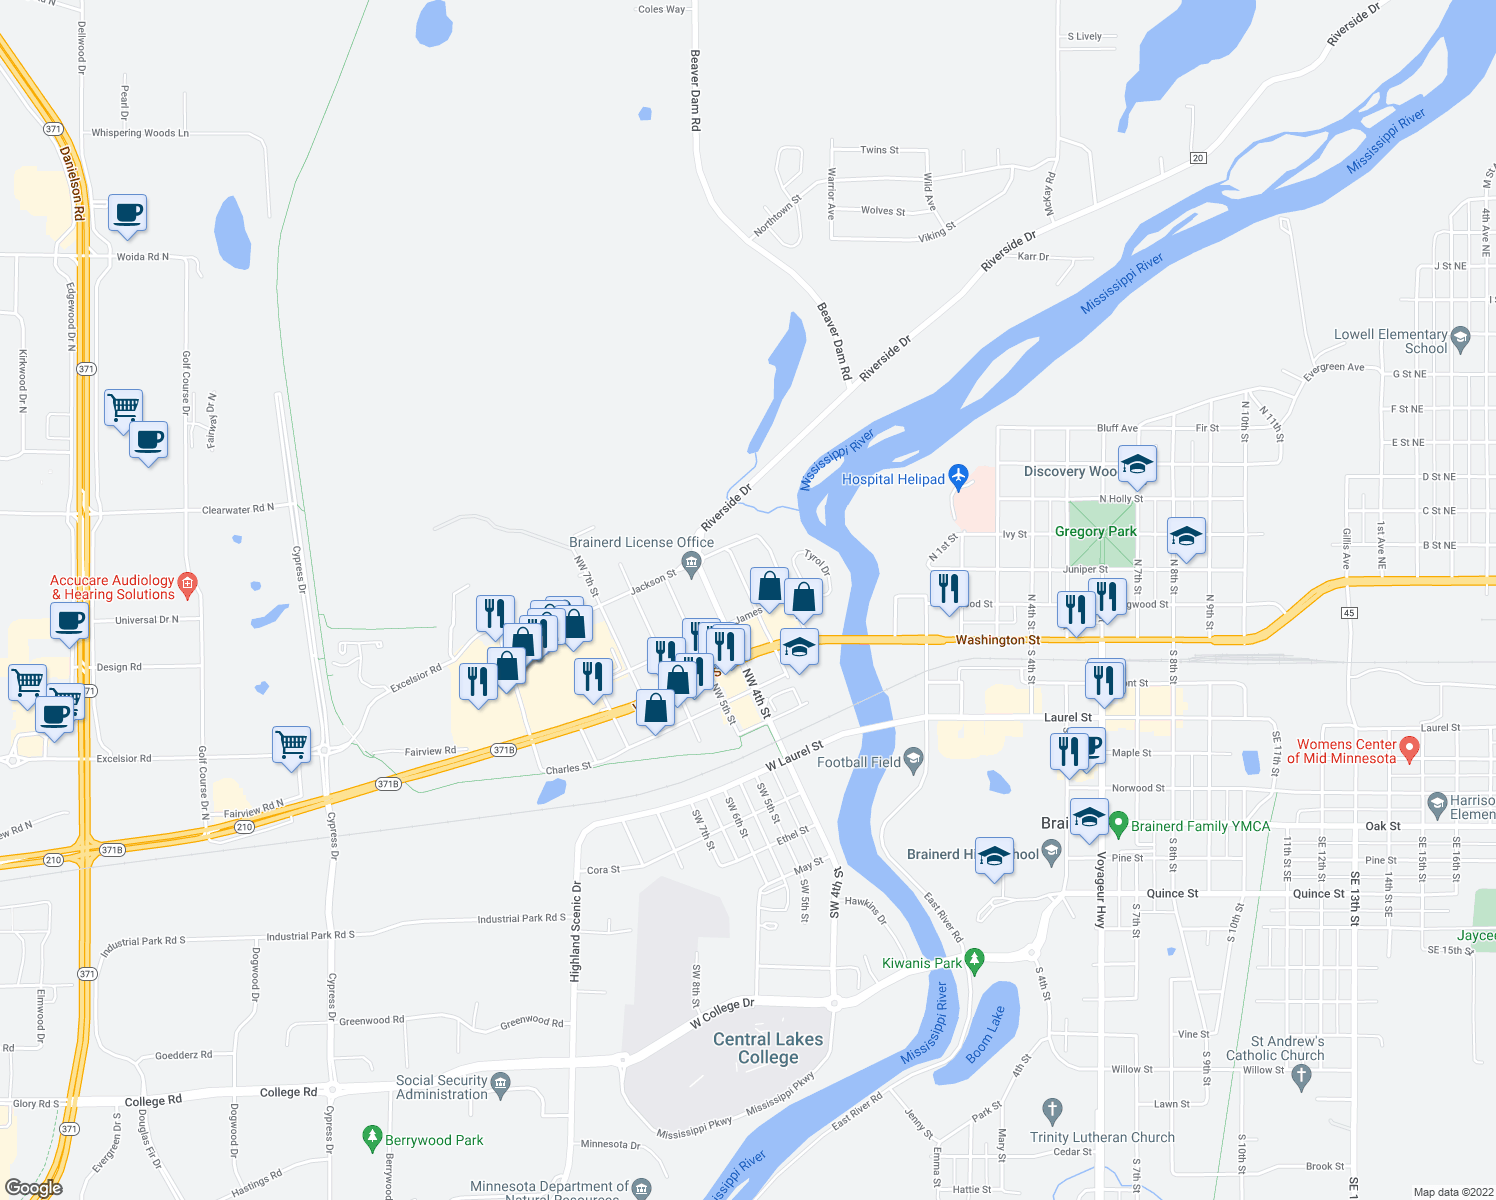 310 James Street  Brainerd MN   Walk Score map of restaurants  bars  coffee shops  grocery stores  and more near 310